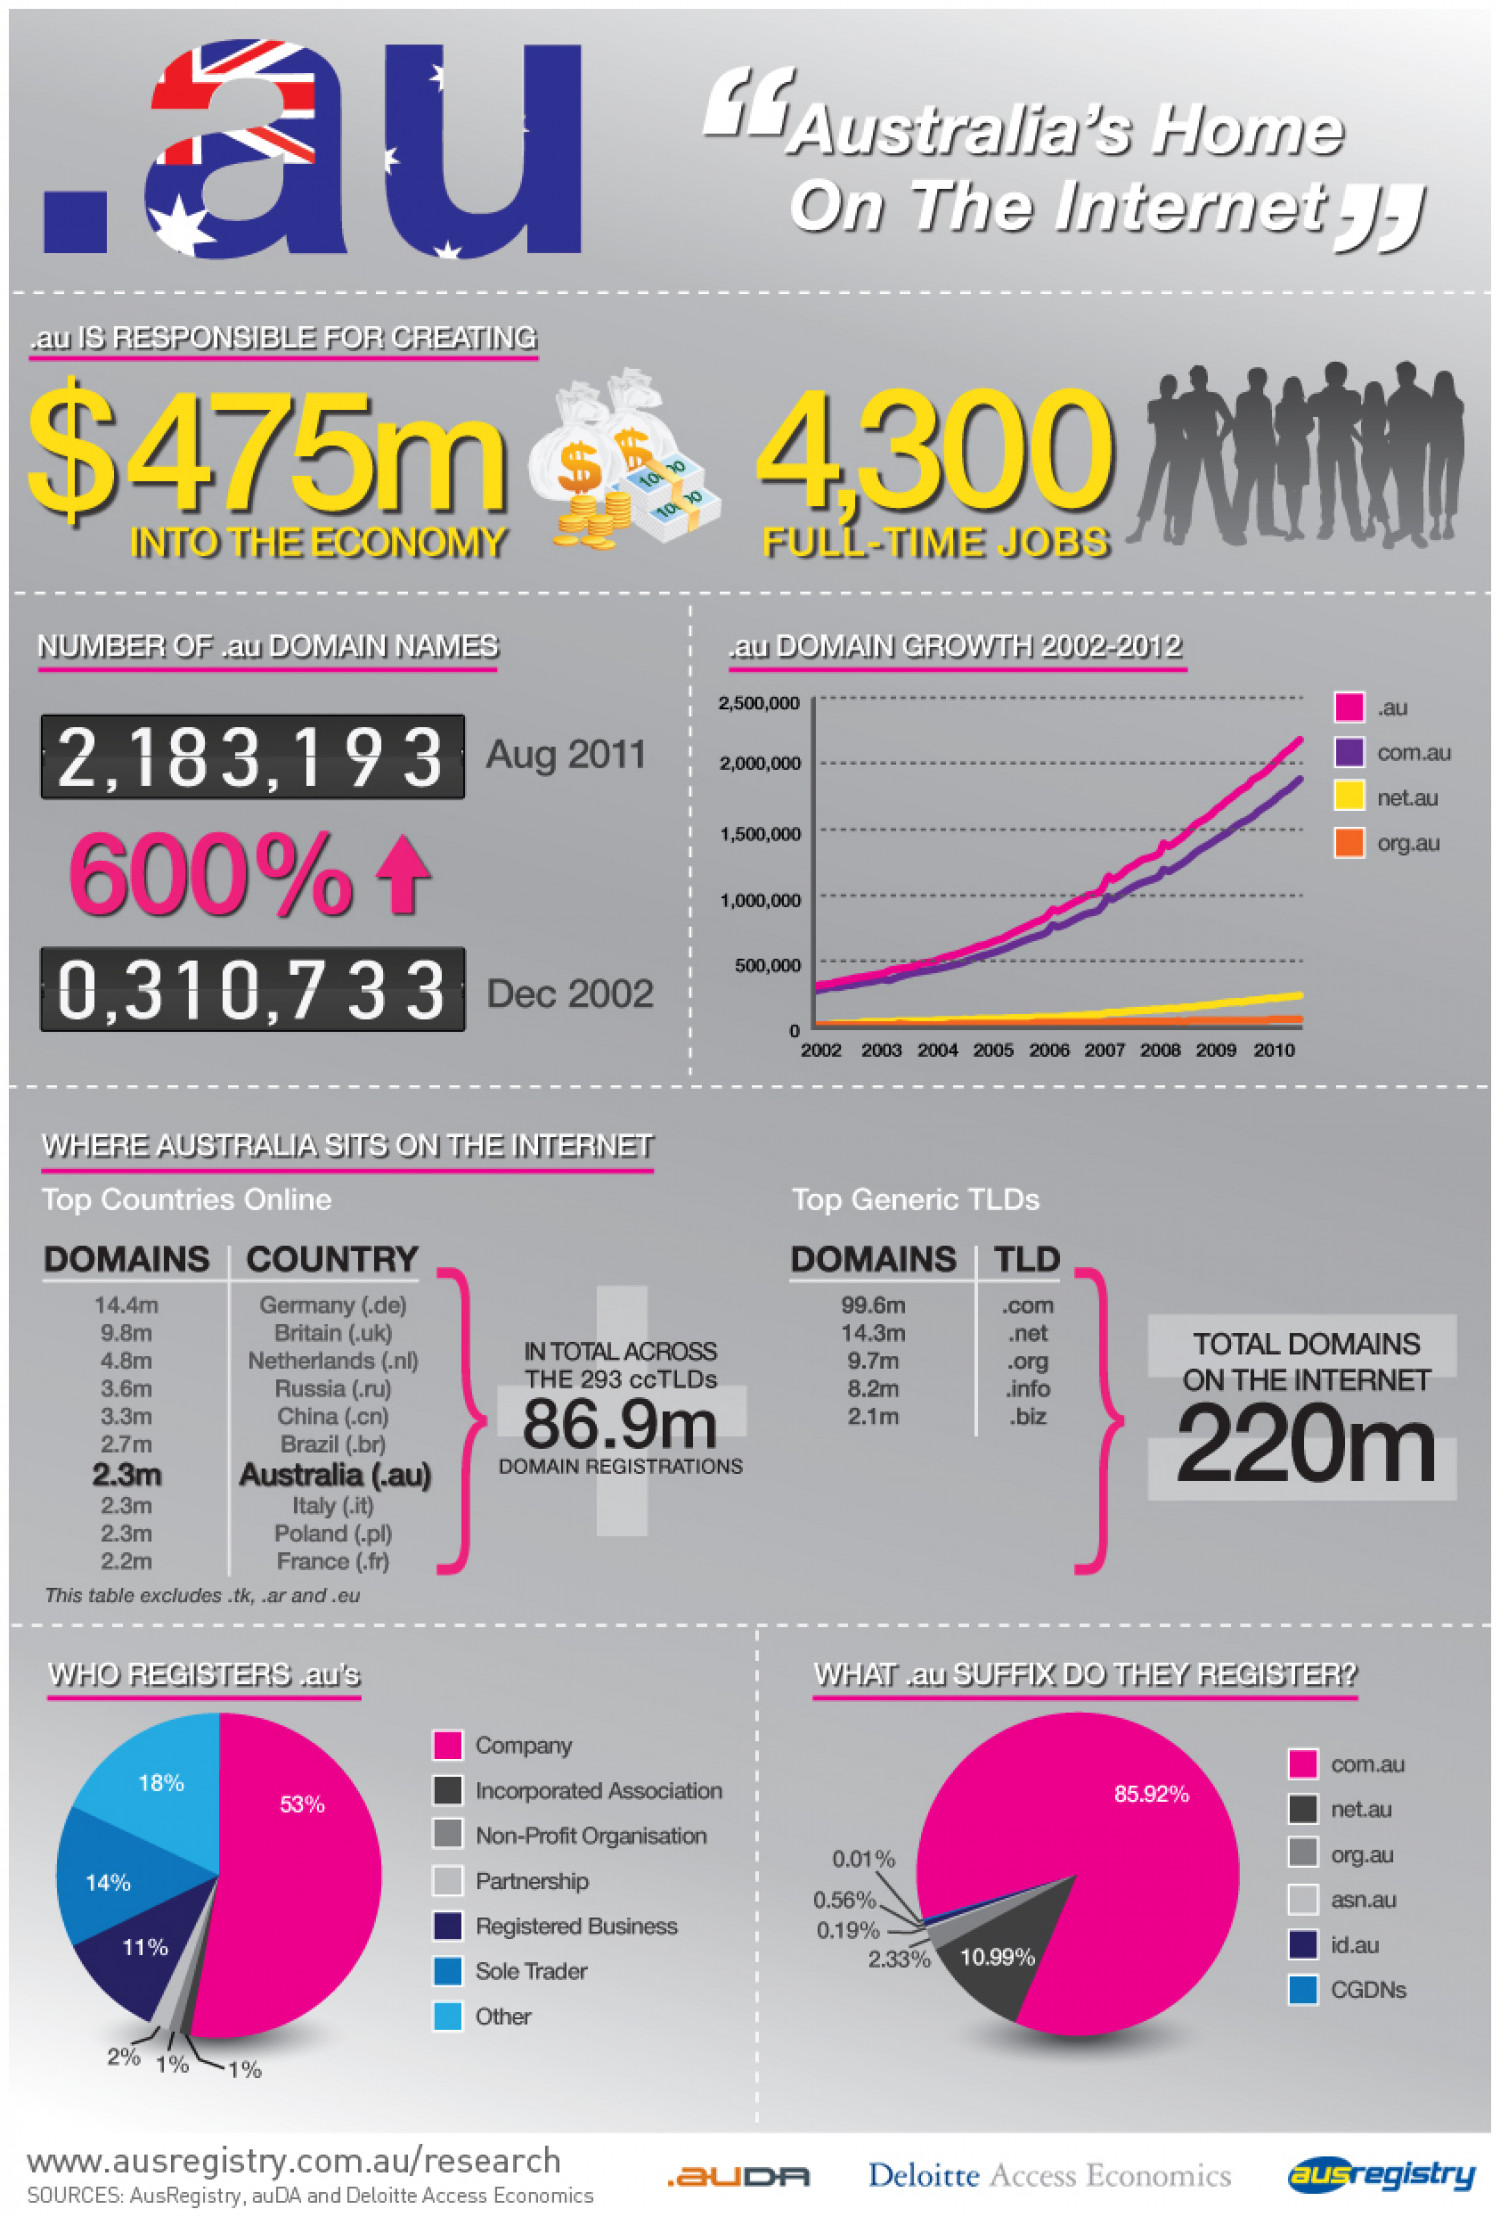 Australia's Home on The Internet Infographic